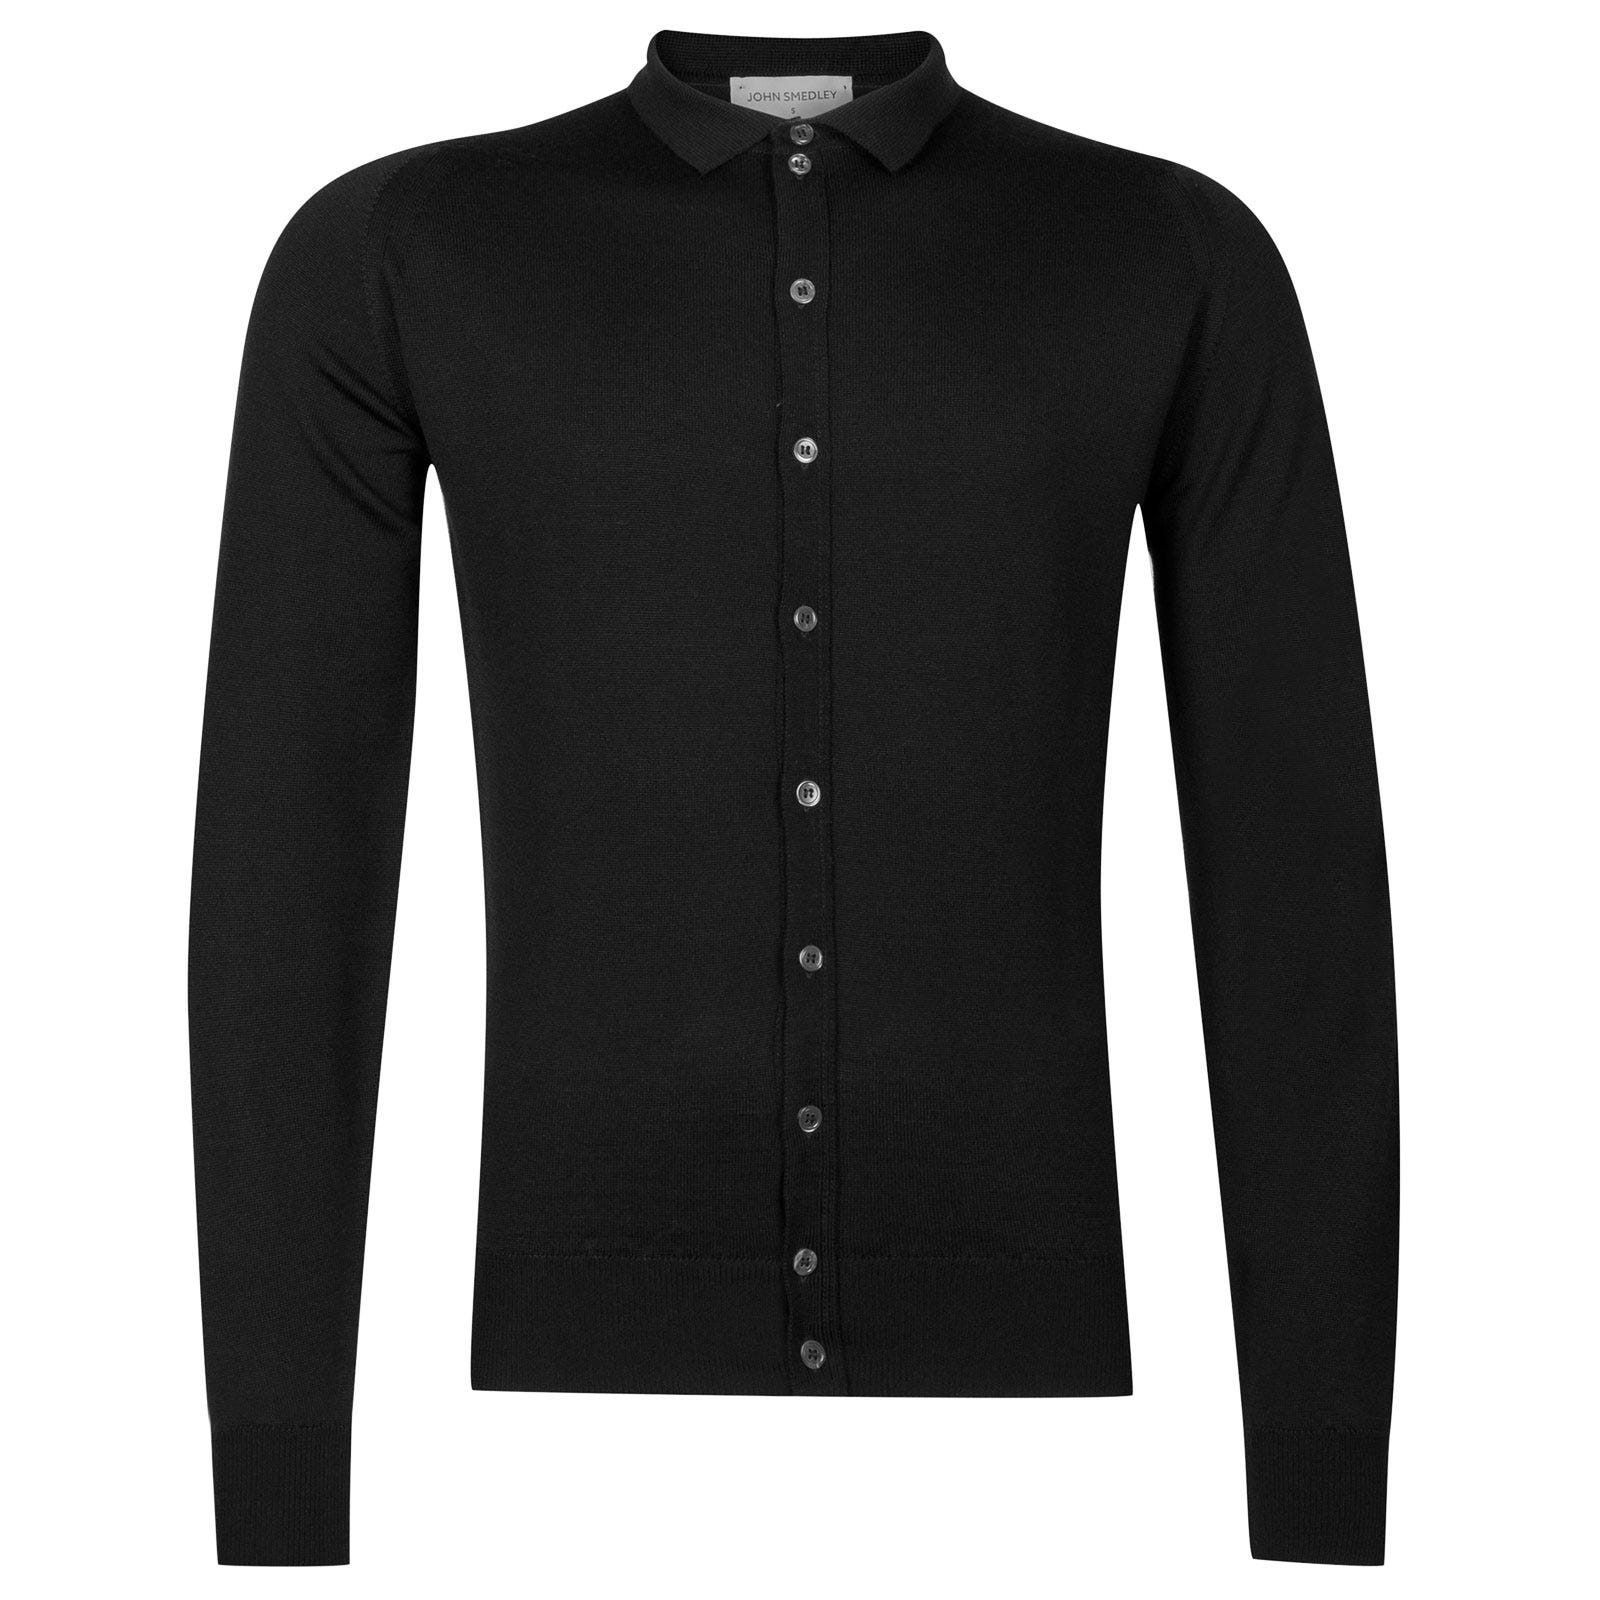 John Smedley parwish Merino Wool Shirt in Black-L